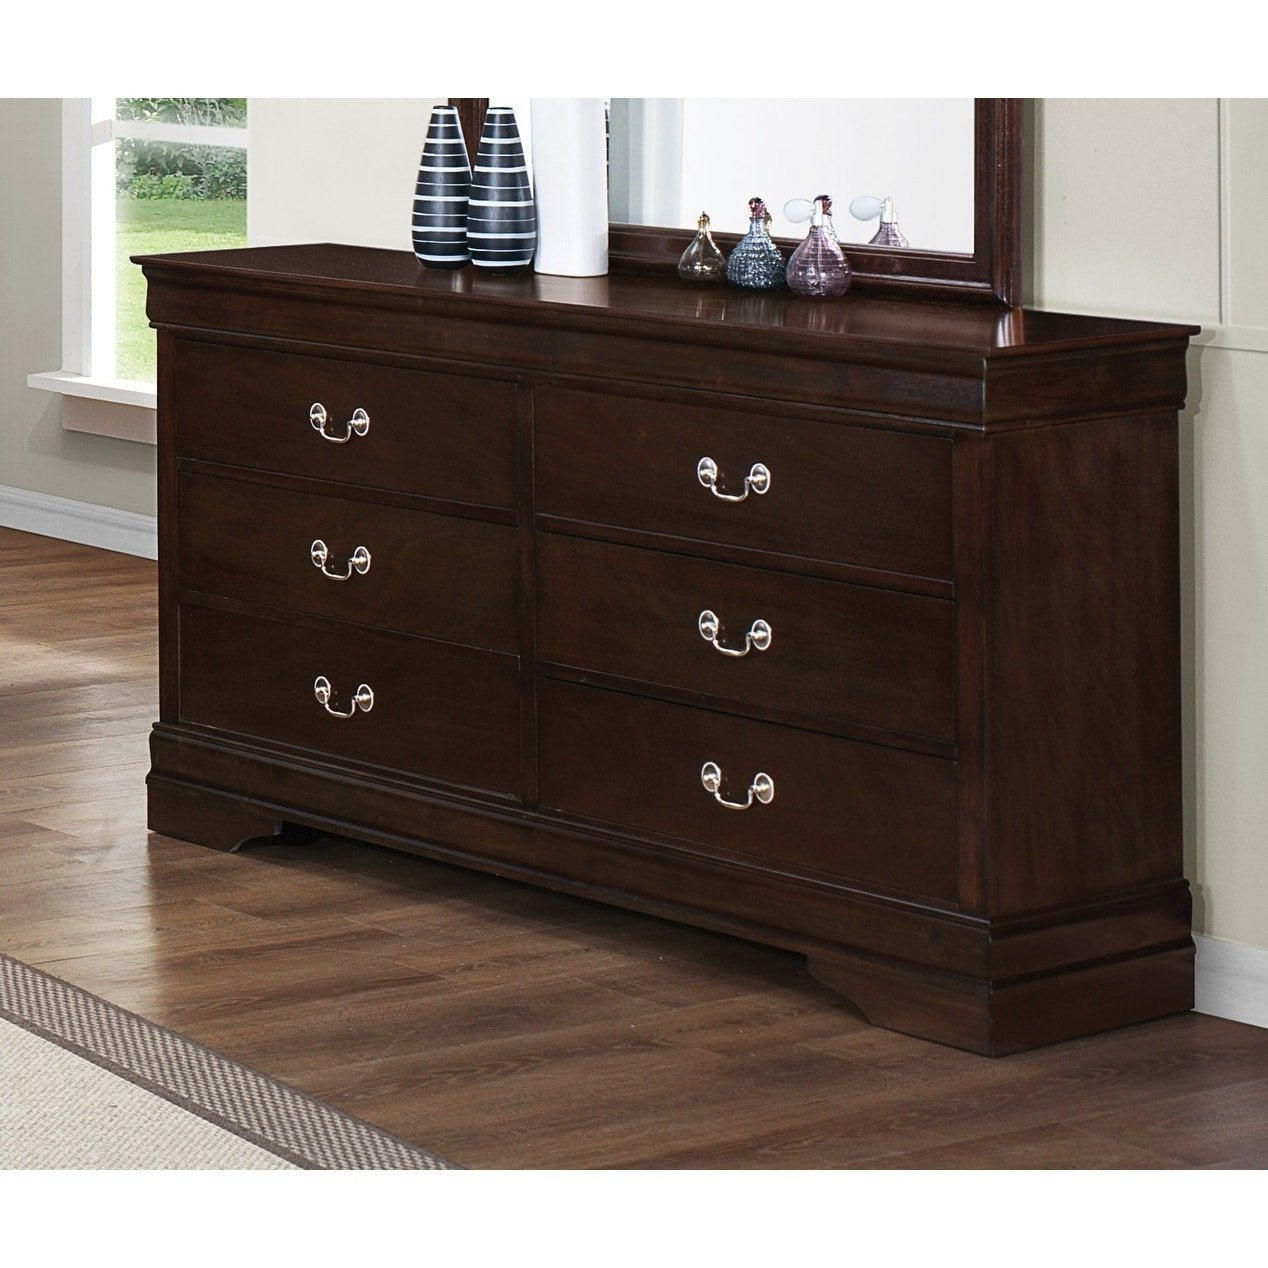 Louis Philippe Bedroom Set Inspirational Louis Philippe Warm Brown 4 Piece Bedroom Set